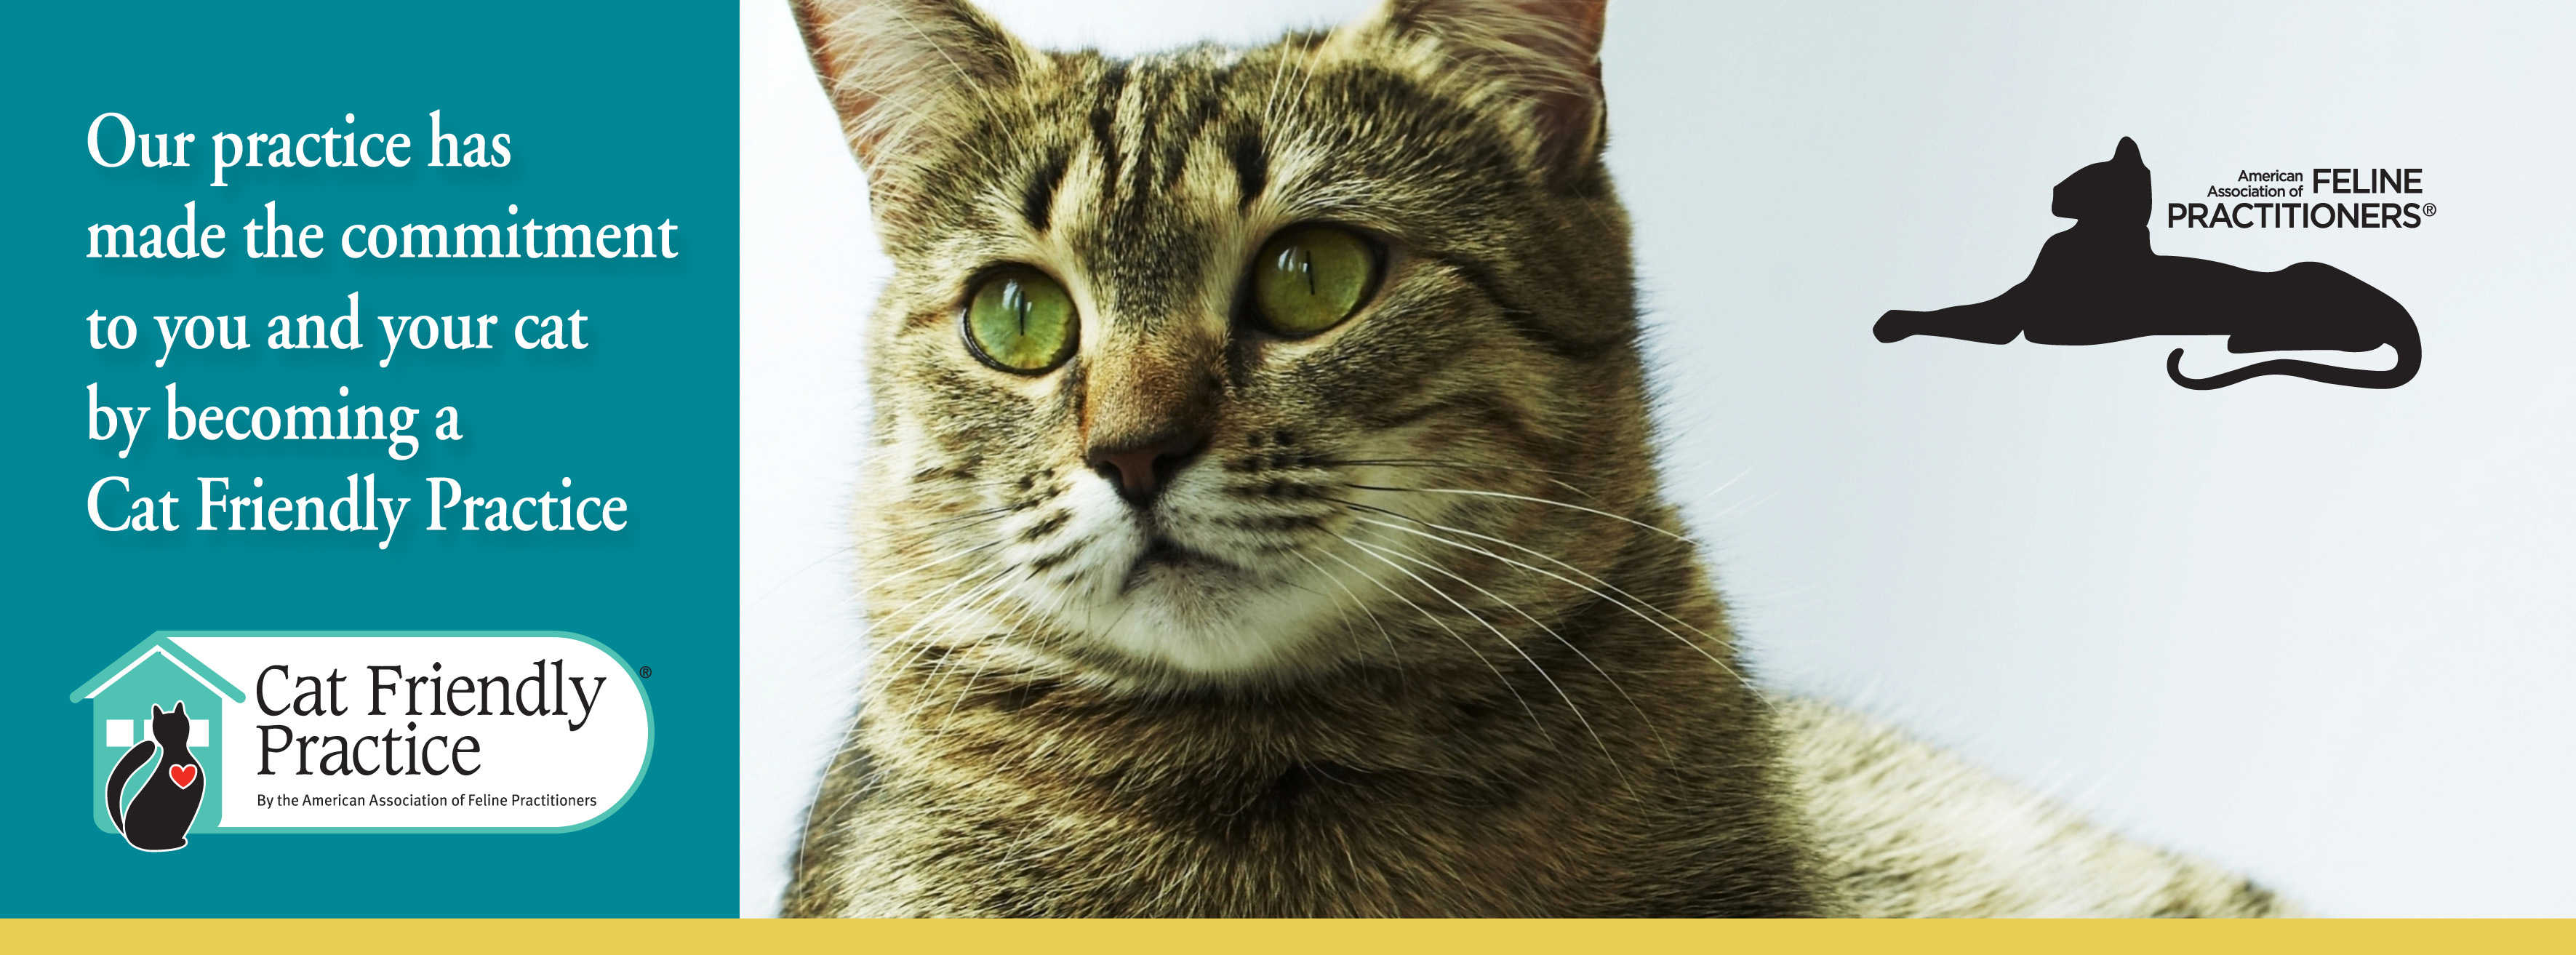 Our practice has made a commitment to you and your cat by becoming at cat friendly practice. The background photo is a brown and beige cat with green eyes